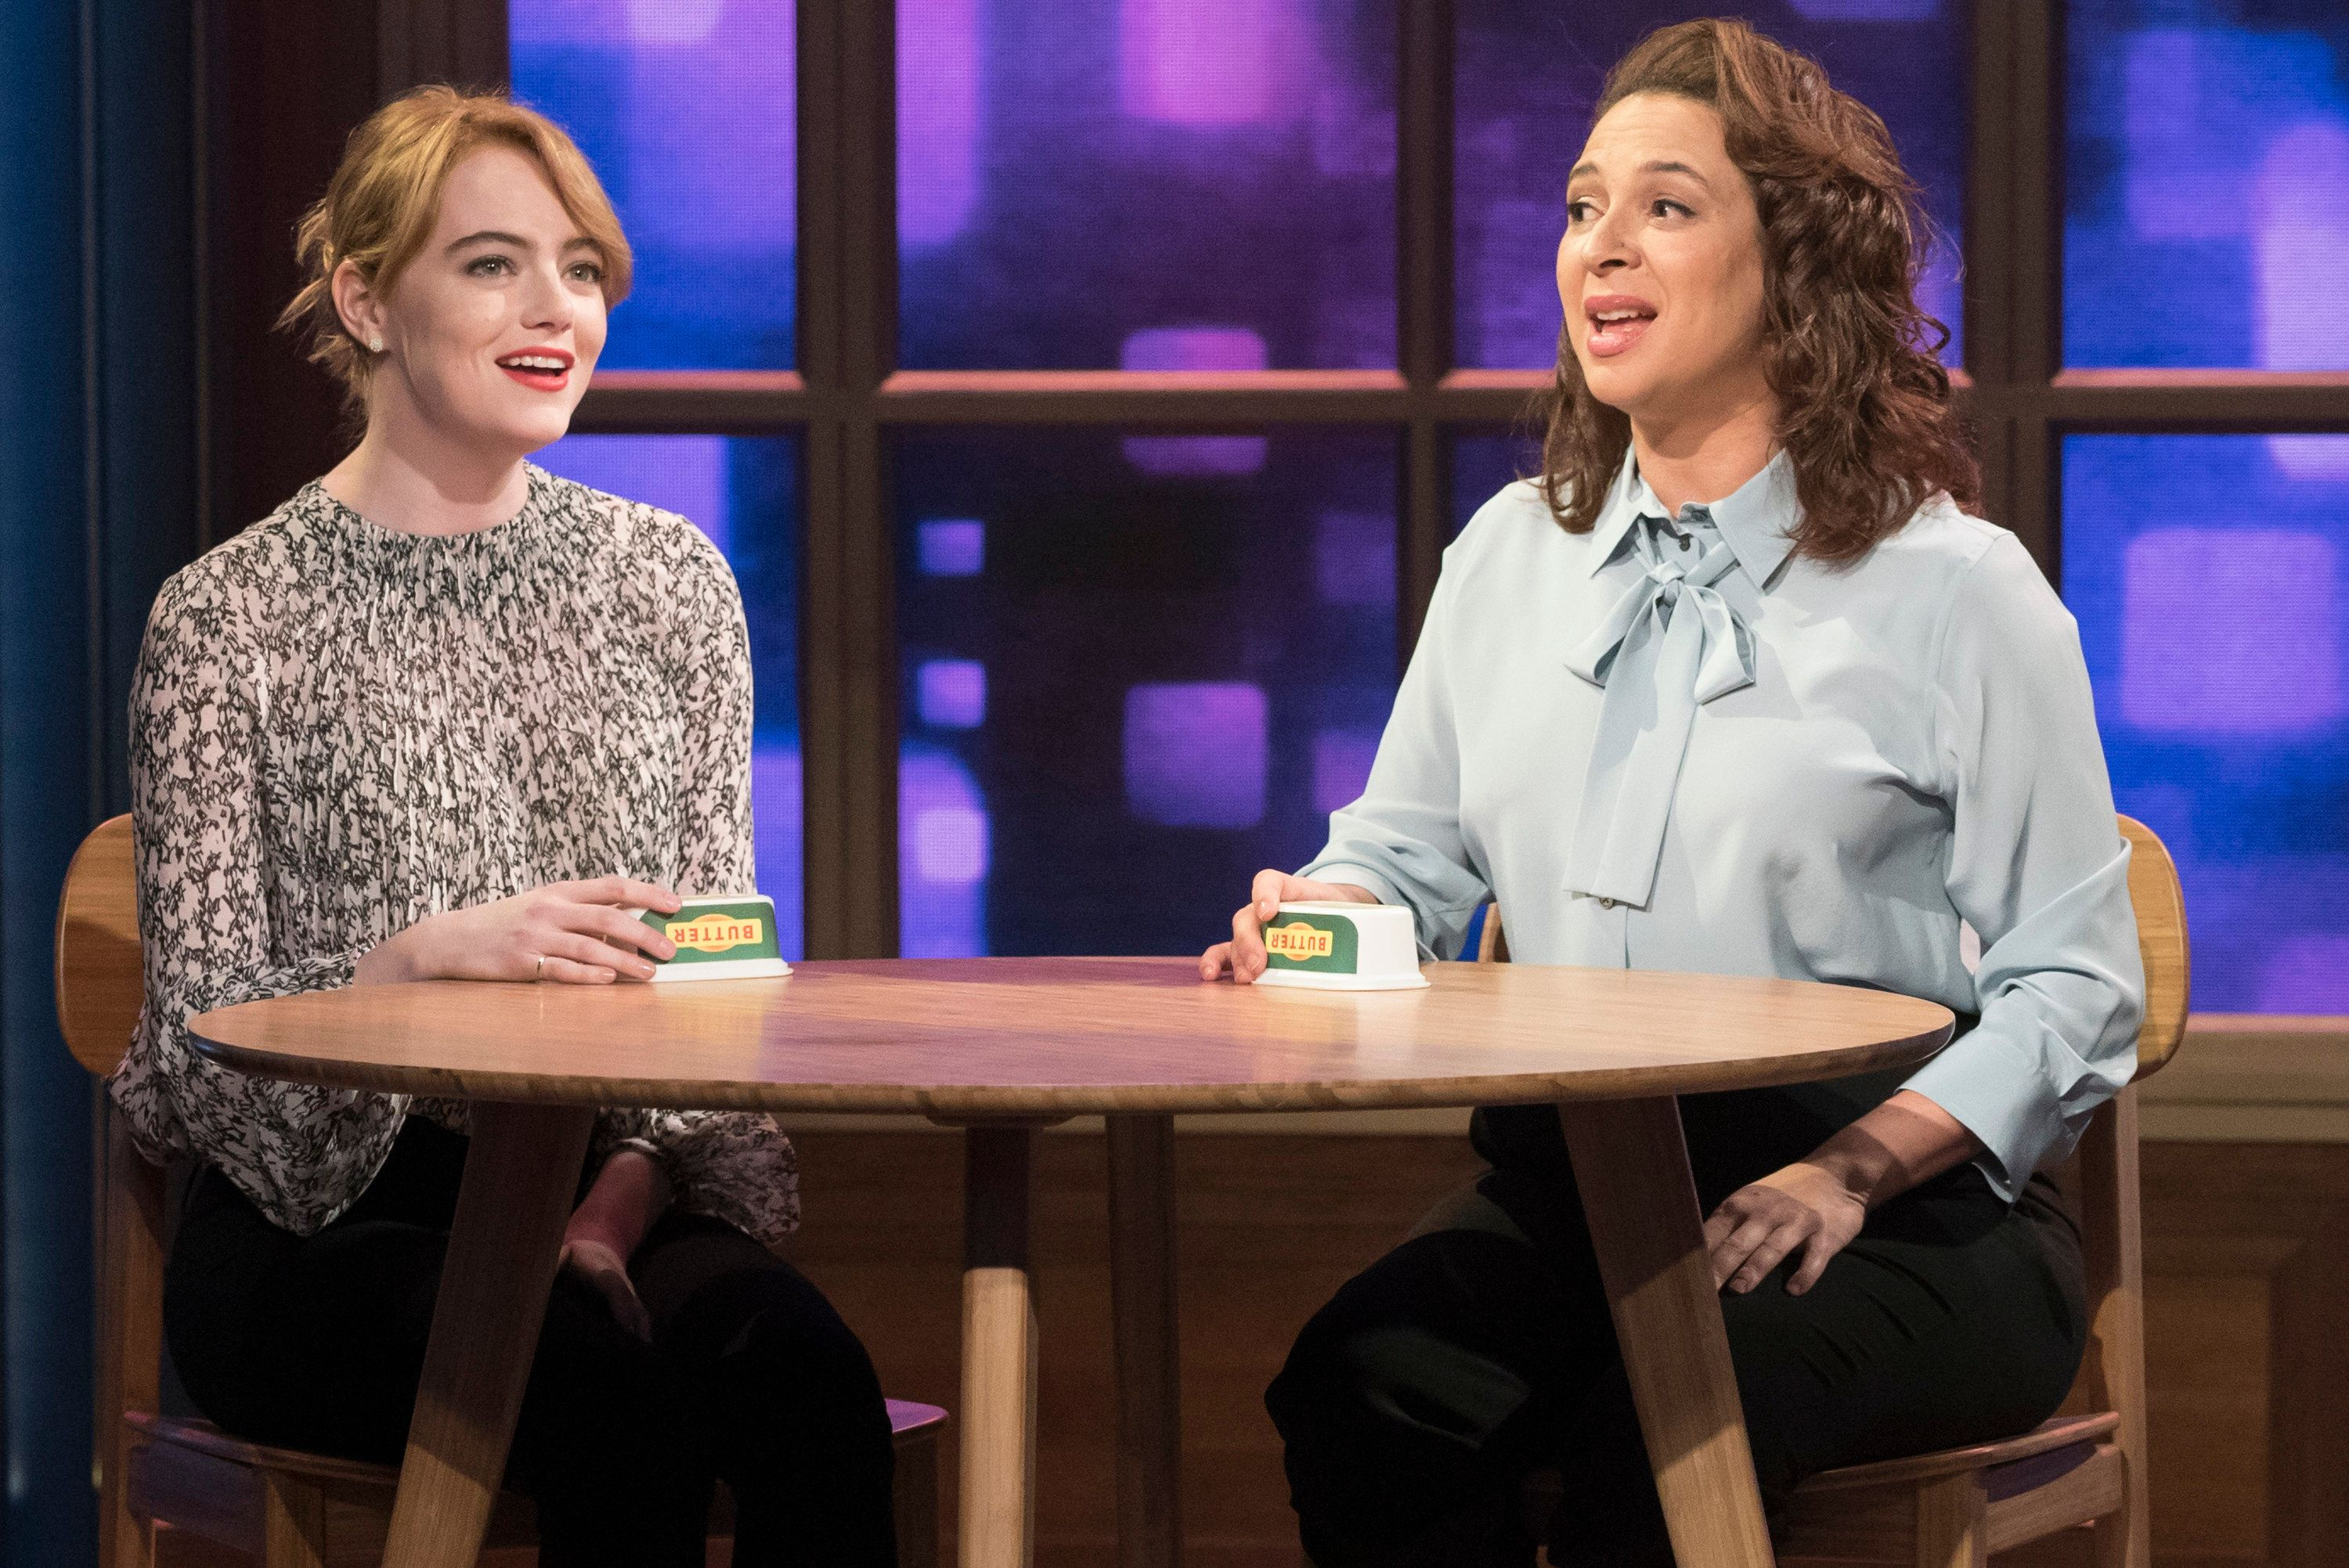 """Emma Stone and Maya Rudolph during the """"Call Your Girlfriend"""" song on July 12, 2016."""